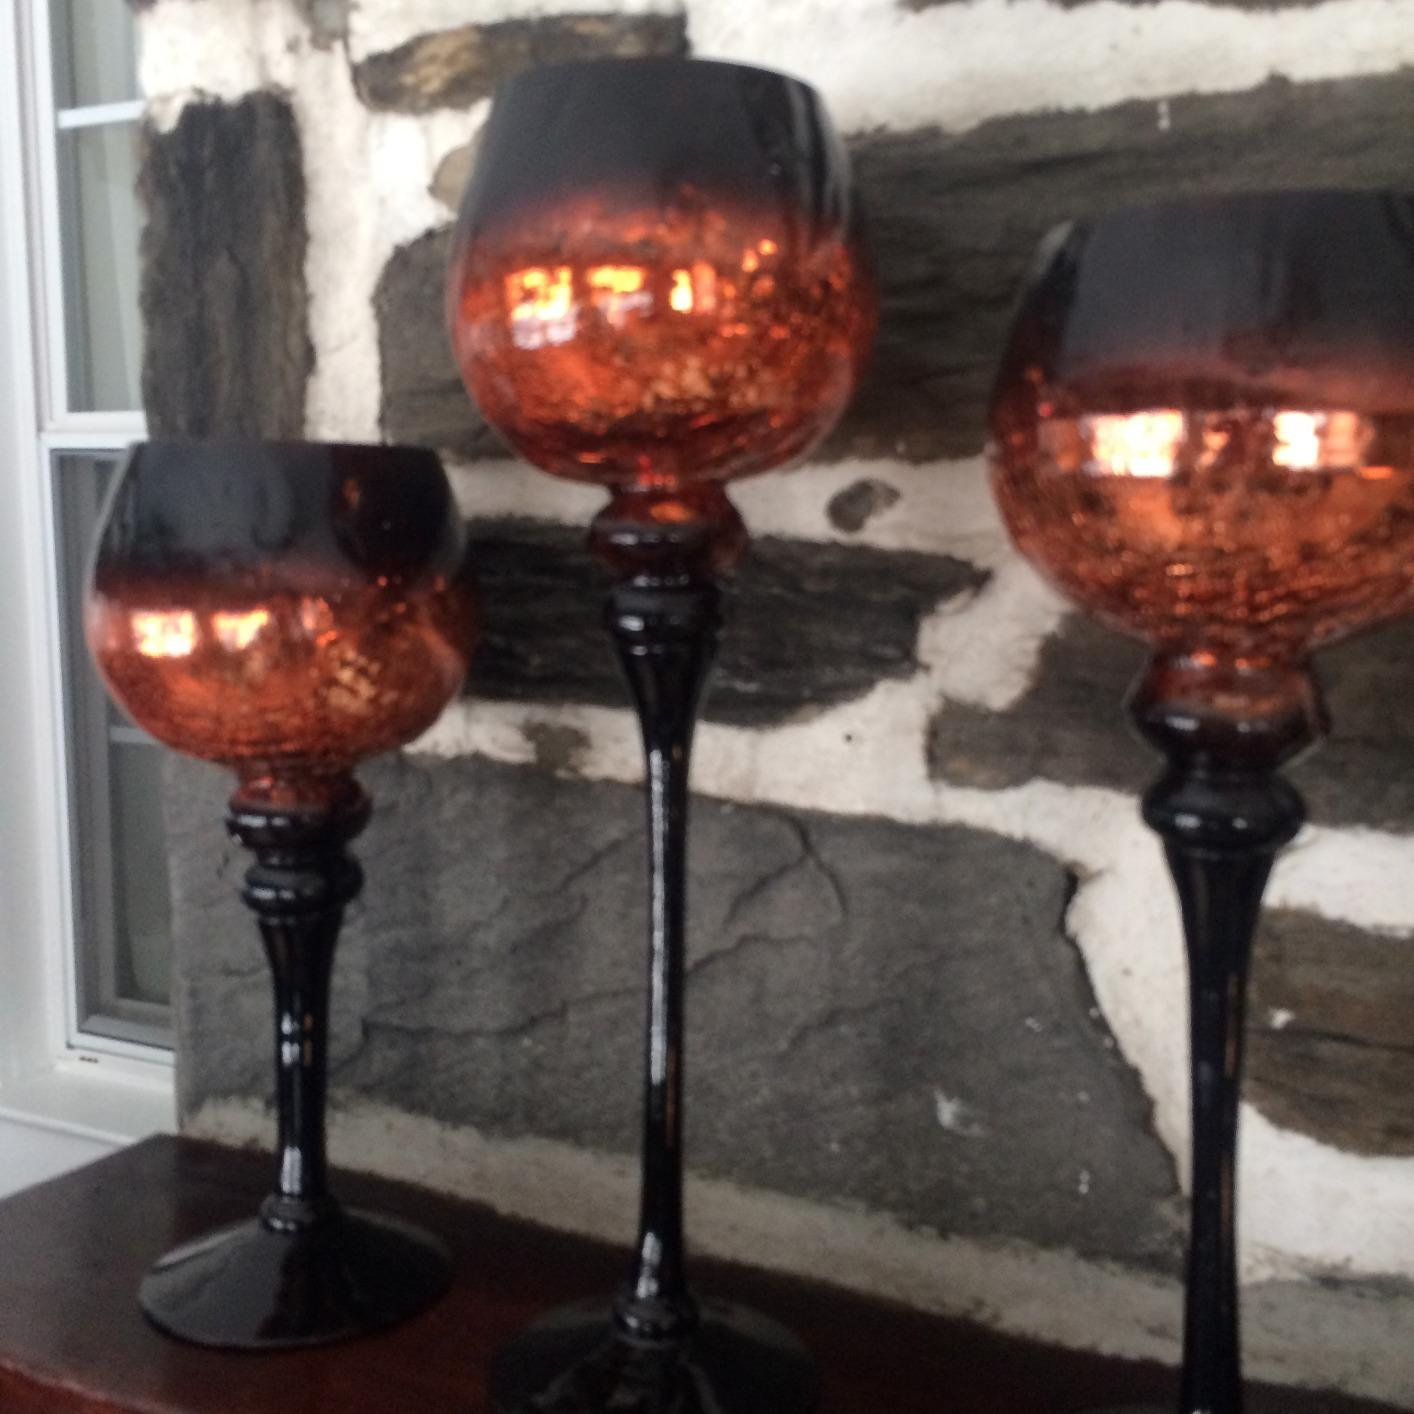 Set of 3 Brown Mercury Chocolate Crackle Finished Glass Hurricane Candle Holders ~ Decorative Sphere Ball Candle Holders ~ Home Decor & Party Centerpiece by Le'raze (Image #4)